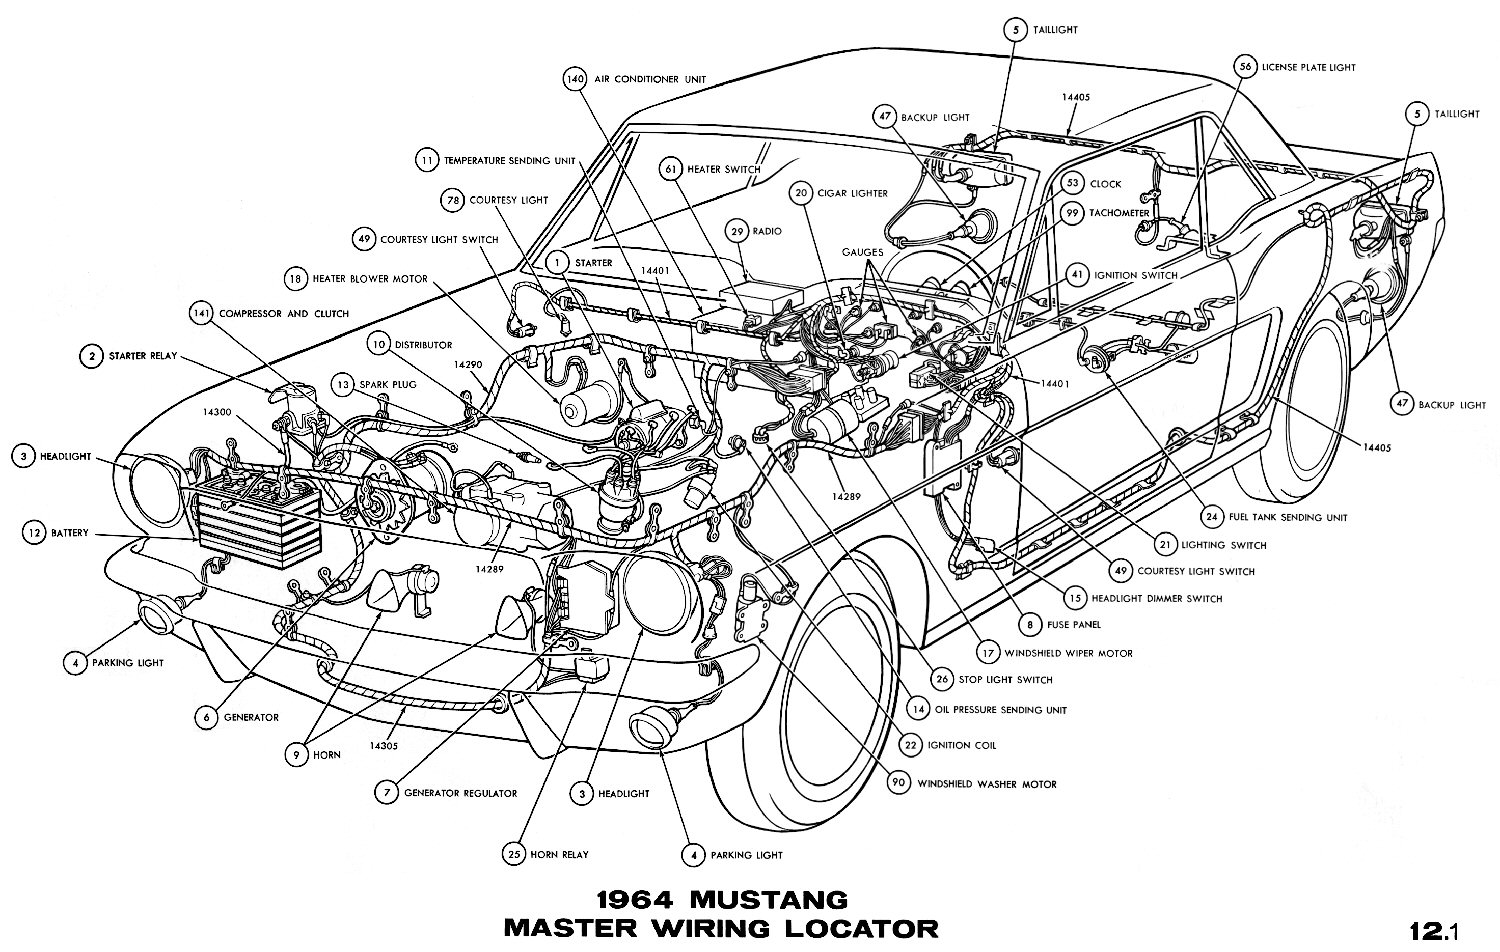 1964a 1964 mustang wiring diagrams average joe restoration 2007 Mustang Wiring Diagram at gsmportal.co